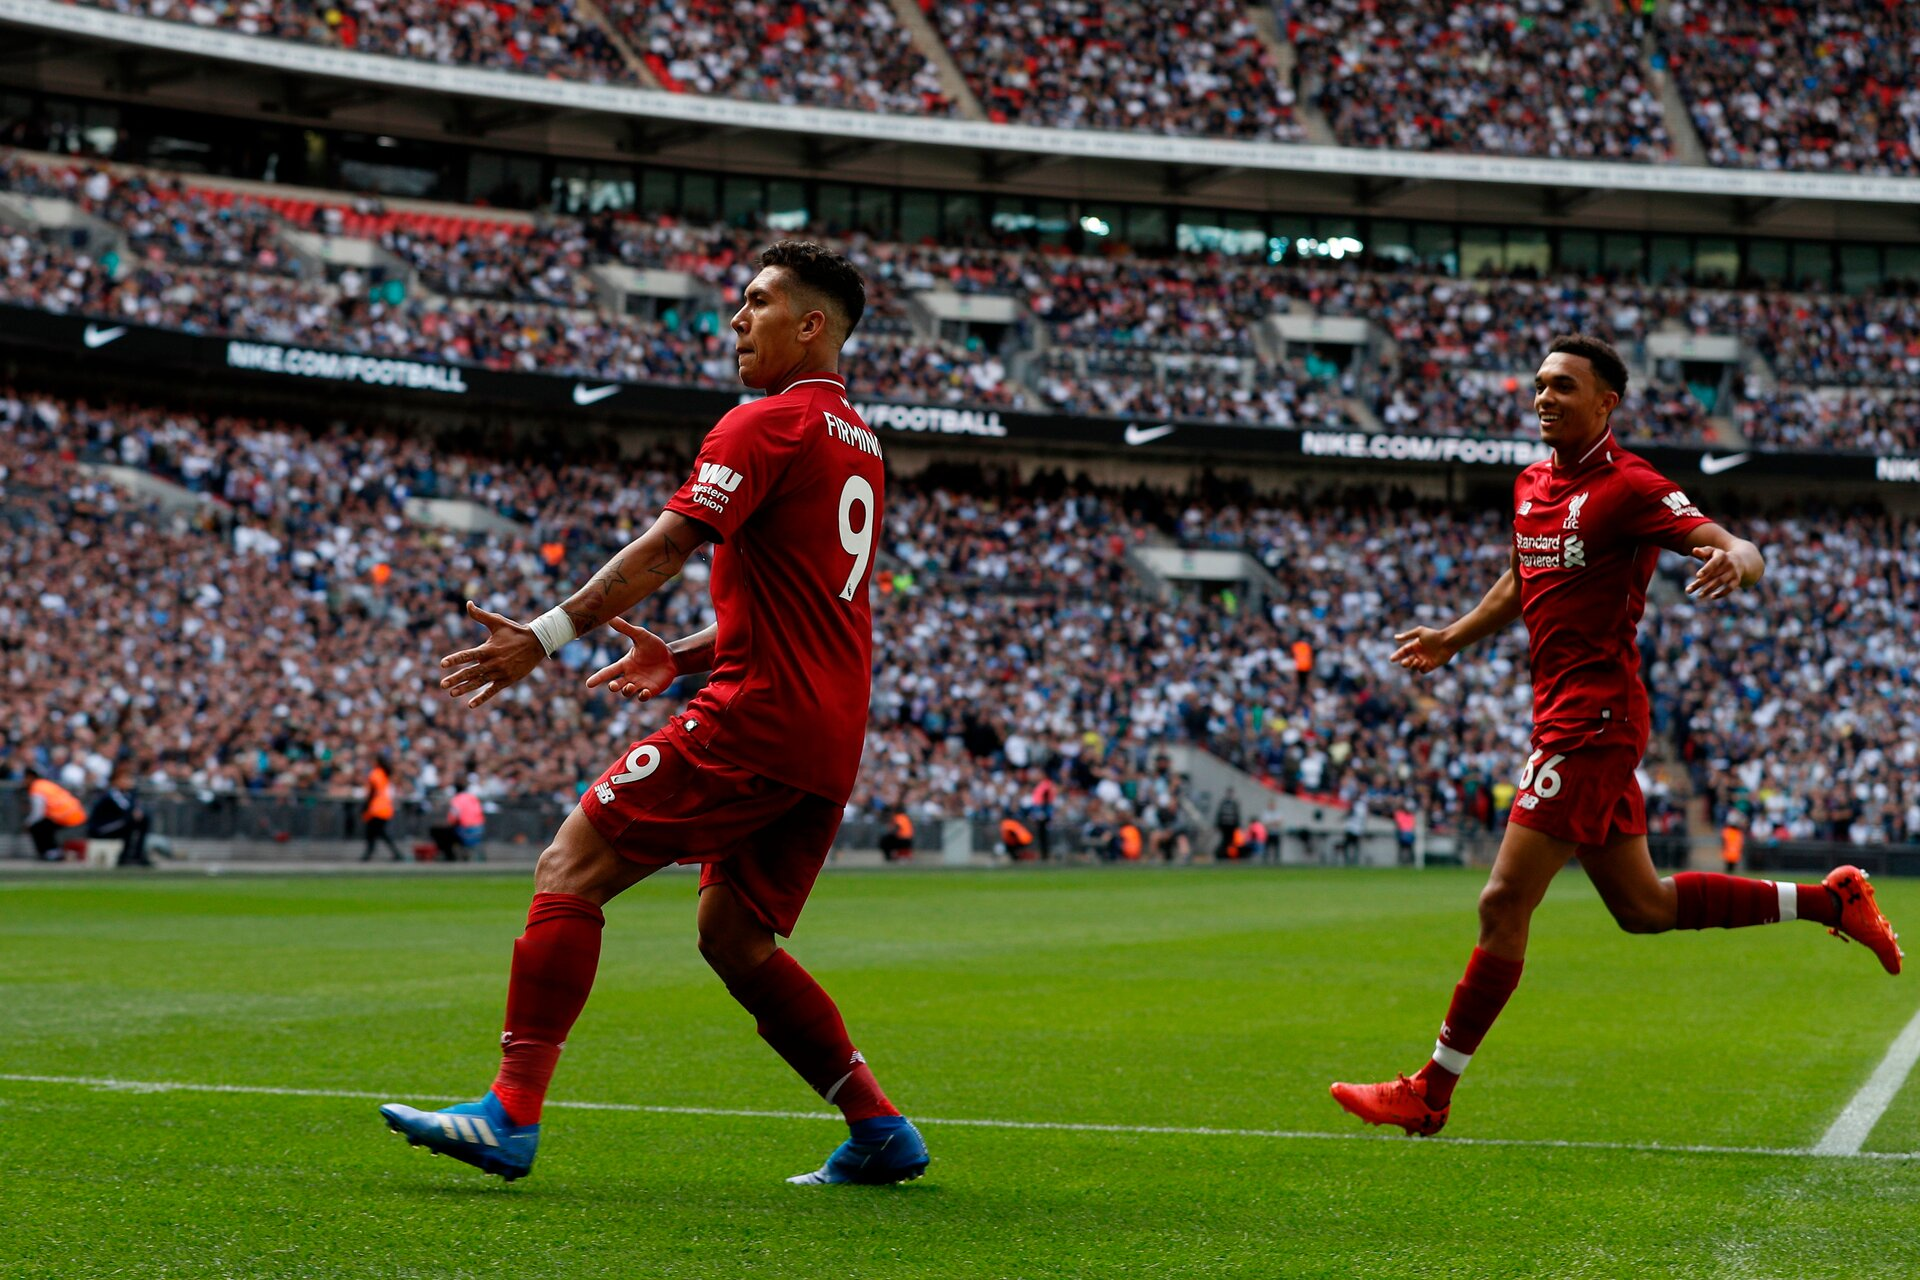 Liverpool's Brazilian midfielder Roberto Firmino (L) celebrates after scoring their second goal with Liverpool's English defender Trent Alexander-Arnold during the English Premier League football match between Tottenham Hotspur and Liverpool at Wembley Stadium in London, on September 15, 2018. (Photo by Adrian DENNIS / AFP) / RESTRICTED TO EDITORIAL USE. No use with unauthorized audio, video, data, fixture lists, club/league logos or 'live' services. Online in-match use limited to 120 images. An additional 40 images may be used in extra time. No video emulation. Social media in-match use limited to 120 images. An additional 40 images may be used in extra time. No use in betting publications, games or single club/league/player publications. /         (Photo credit should read ADRIAN DENNIS/AFP/Getty Images)